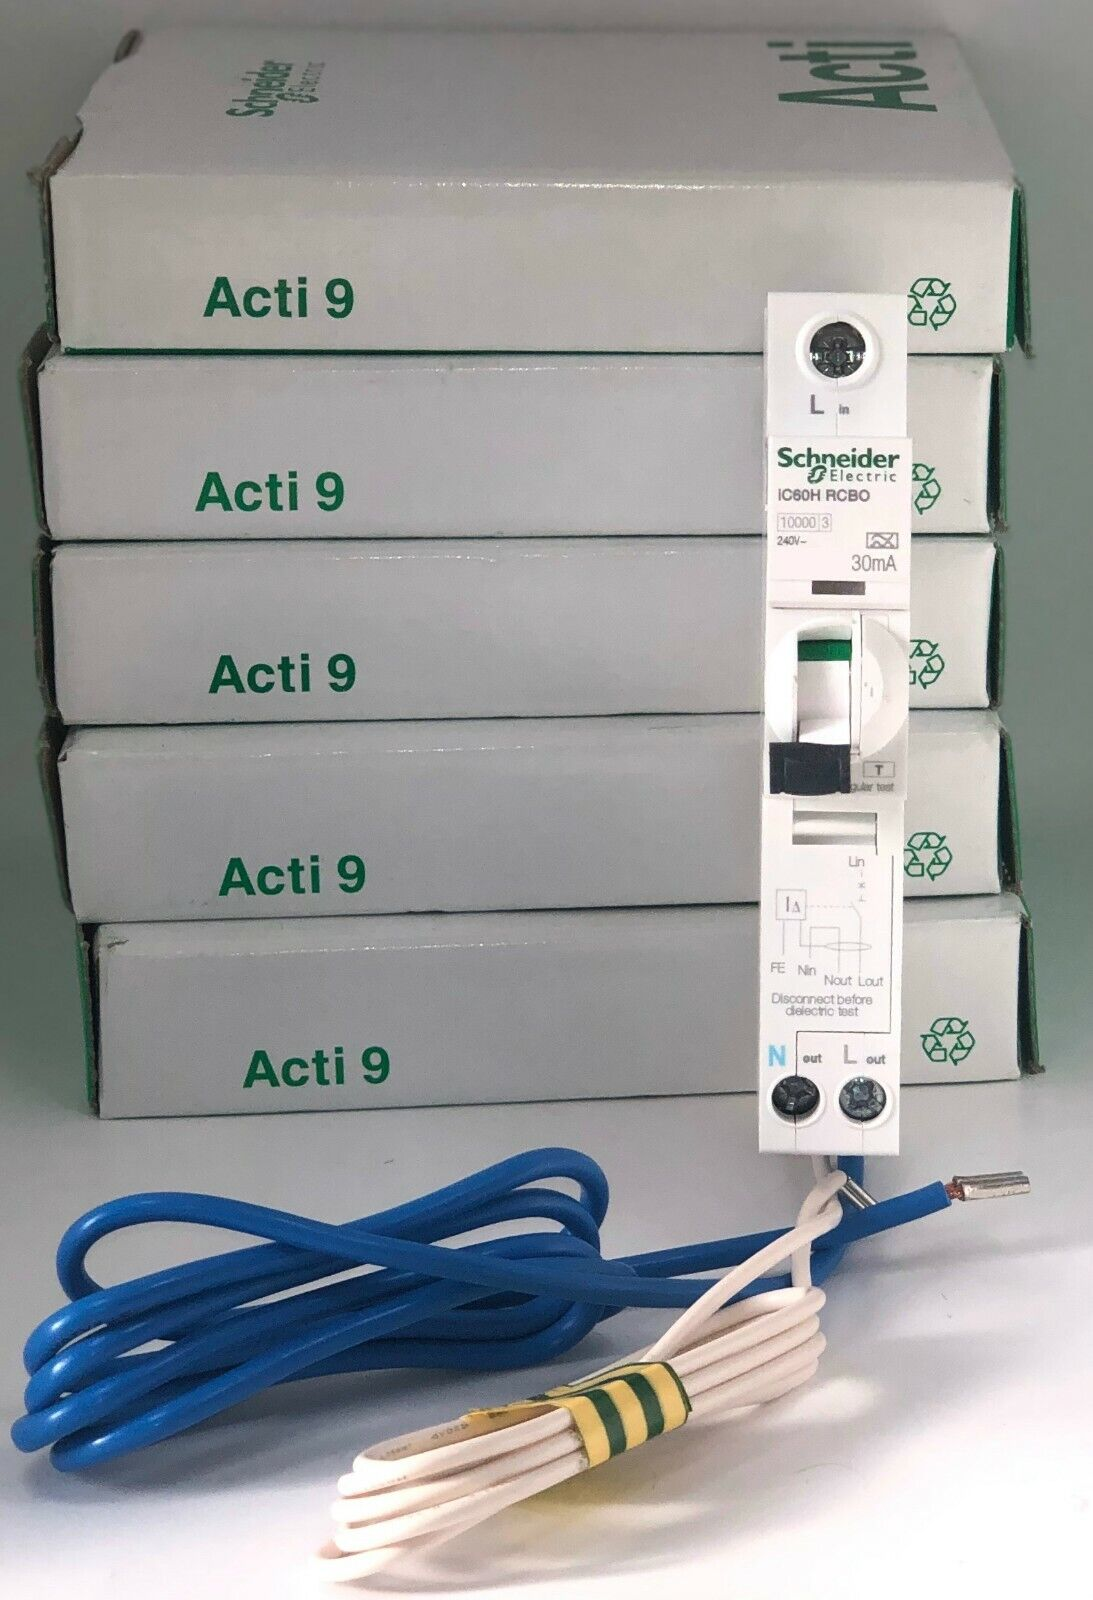 SCHNEIDER 20 AMP TYPE B 20A A9D31820 ACTI9 iC60H 30mA MERLIN GERIN RCBO RCD